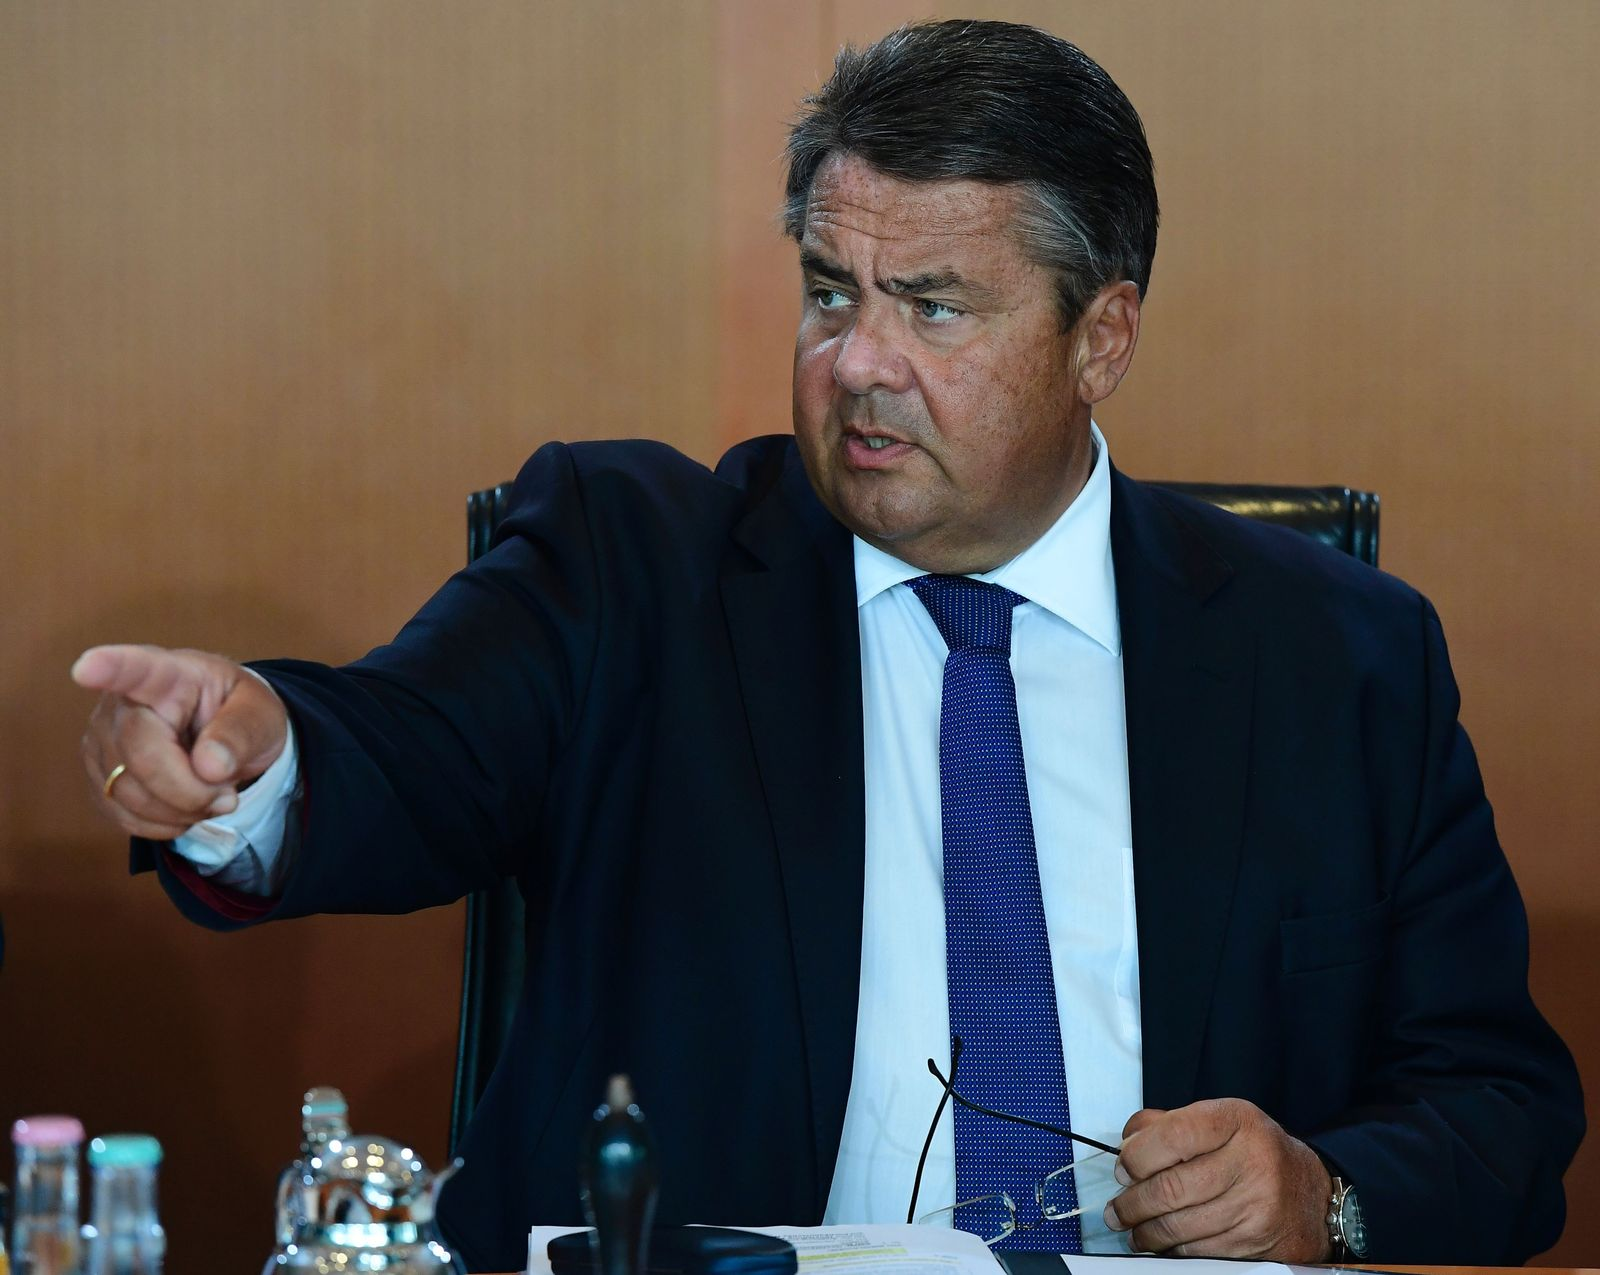 GERMANY-POLITICS Sigmar Gabriel